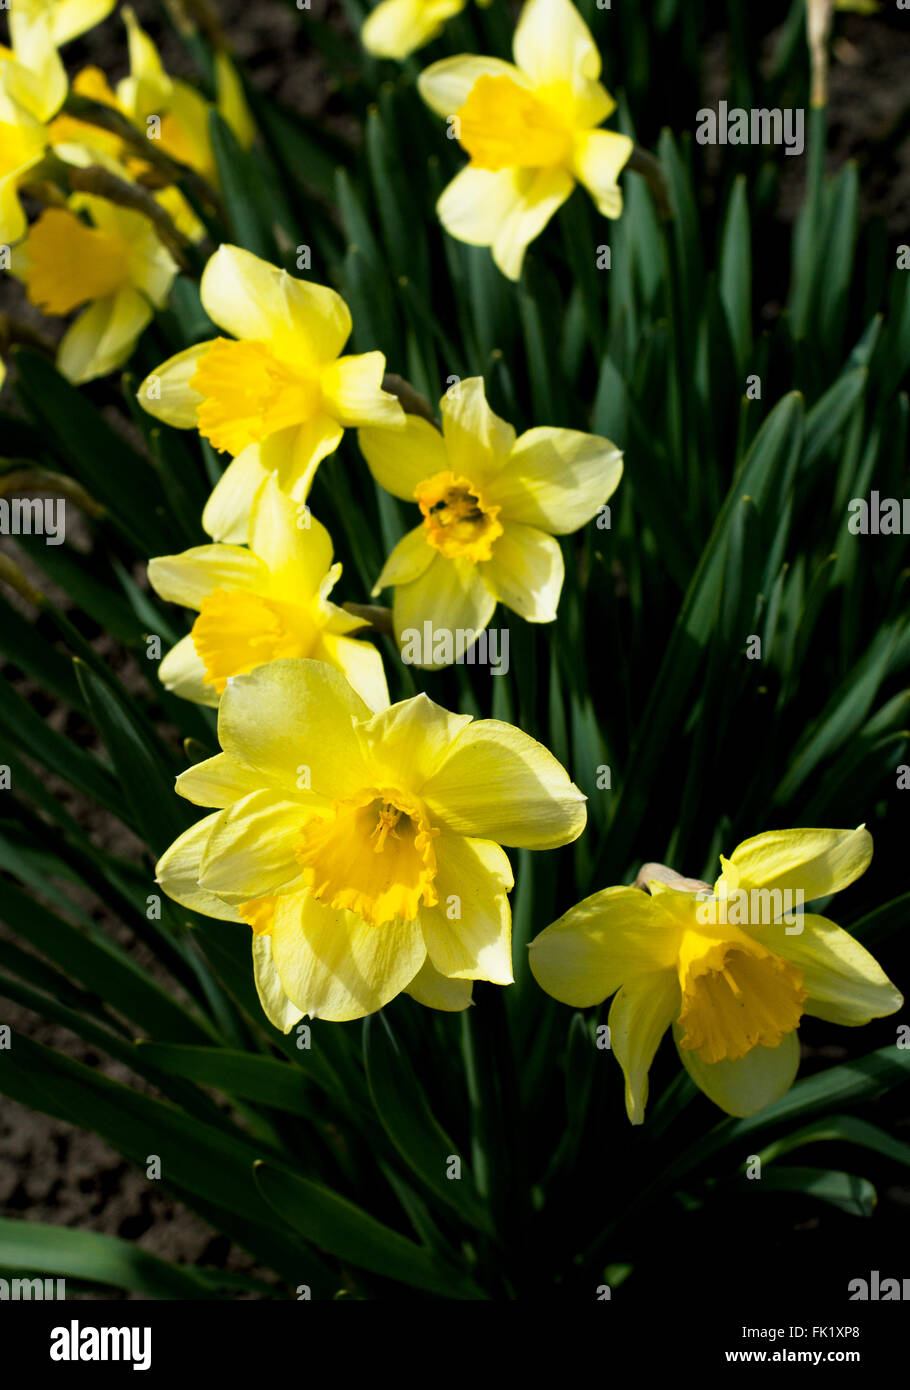 spring yellow flowers, close up - Stock Image